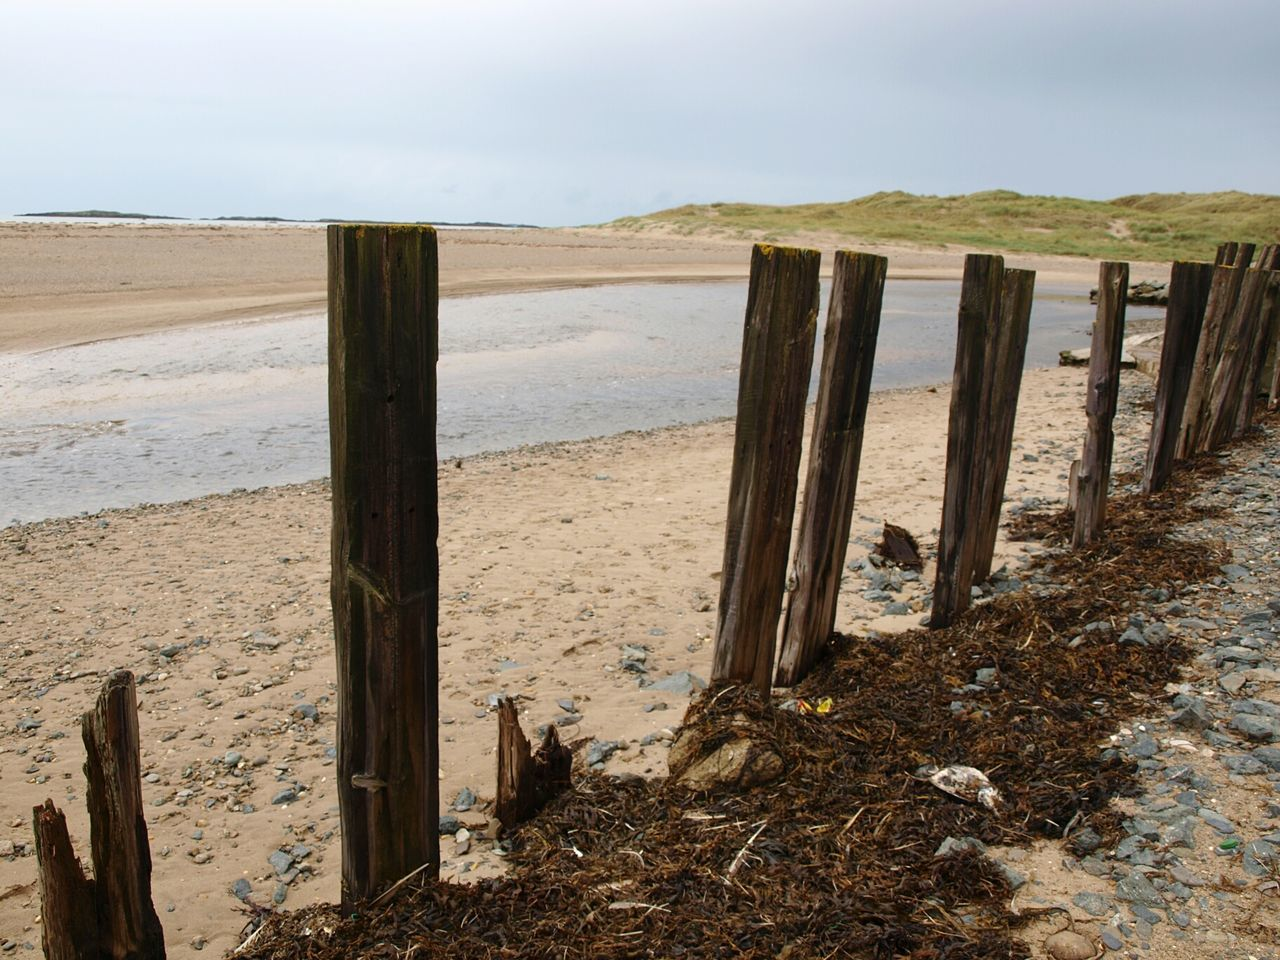 Beach Sea Sand Landscape Wooden Post Water Day Horizon Over Water Outdoors Nature Sky Sand Dune No People Pebbles Seaweed Scenics Nature Freshness